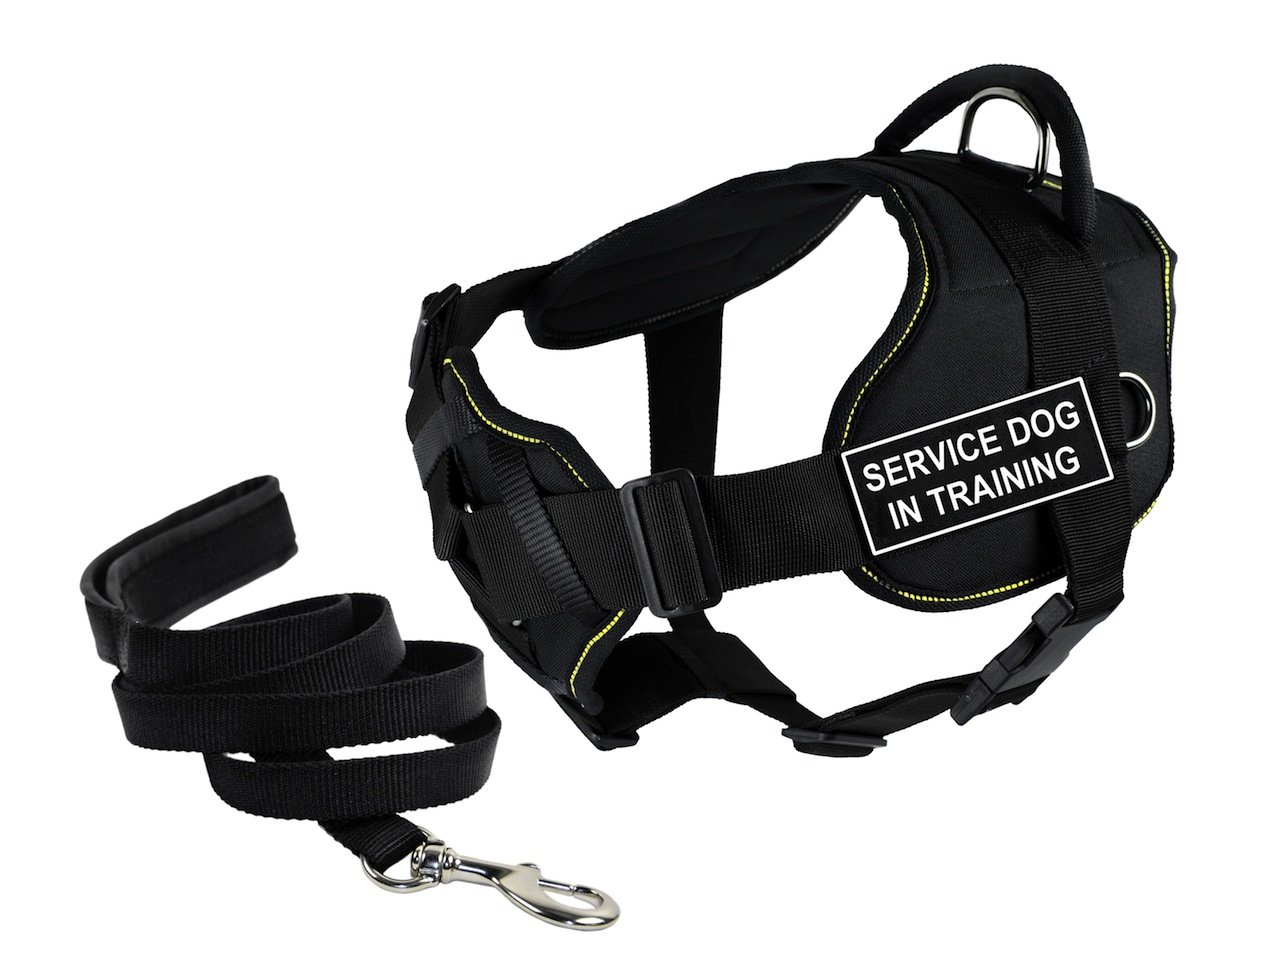 Dean & Tyler Bundle of 28 to 34-Inch DT Fun Harness with Chest Support and 6-Feet Stainless Snap Padded Puppy Leash, Service Dog in Training, Black with Yellow Trim